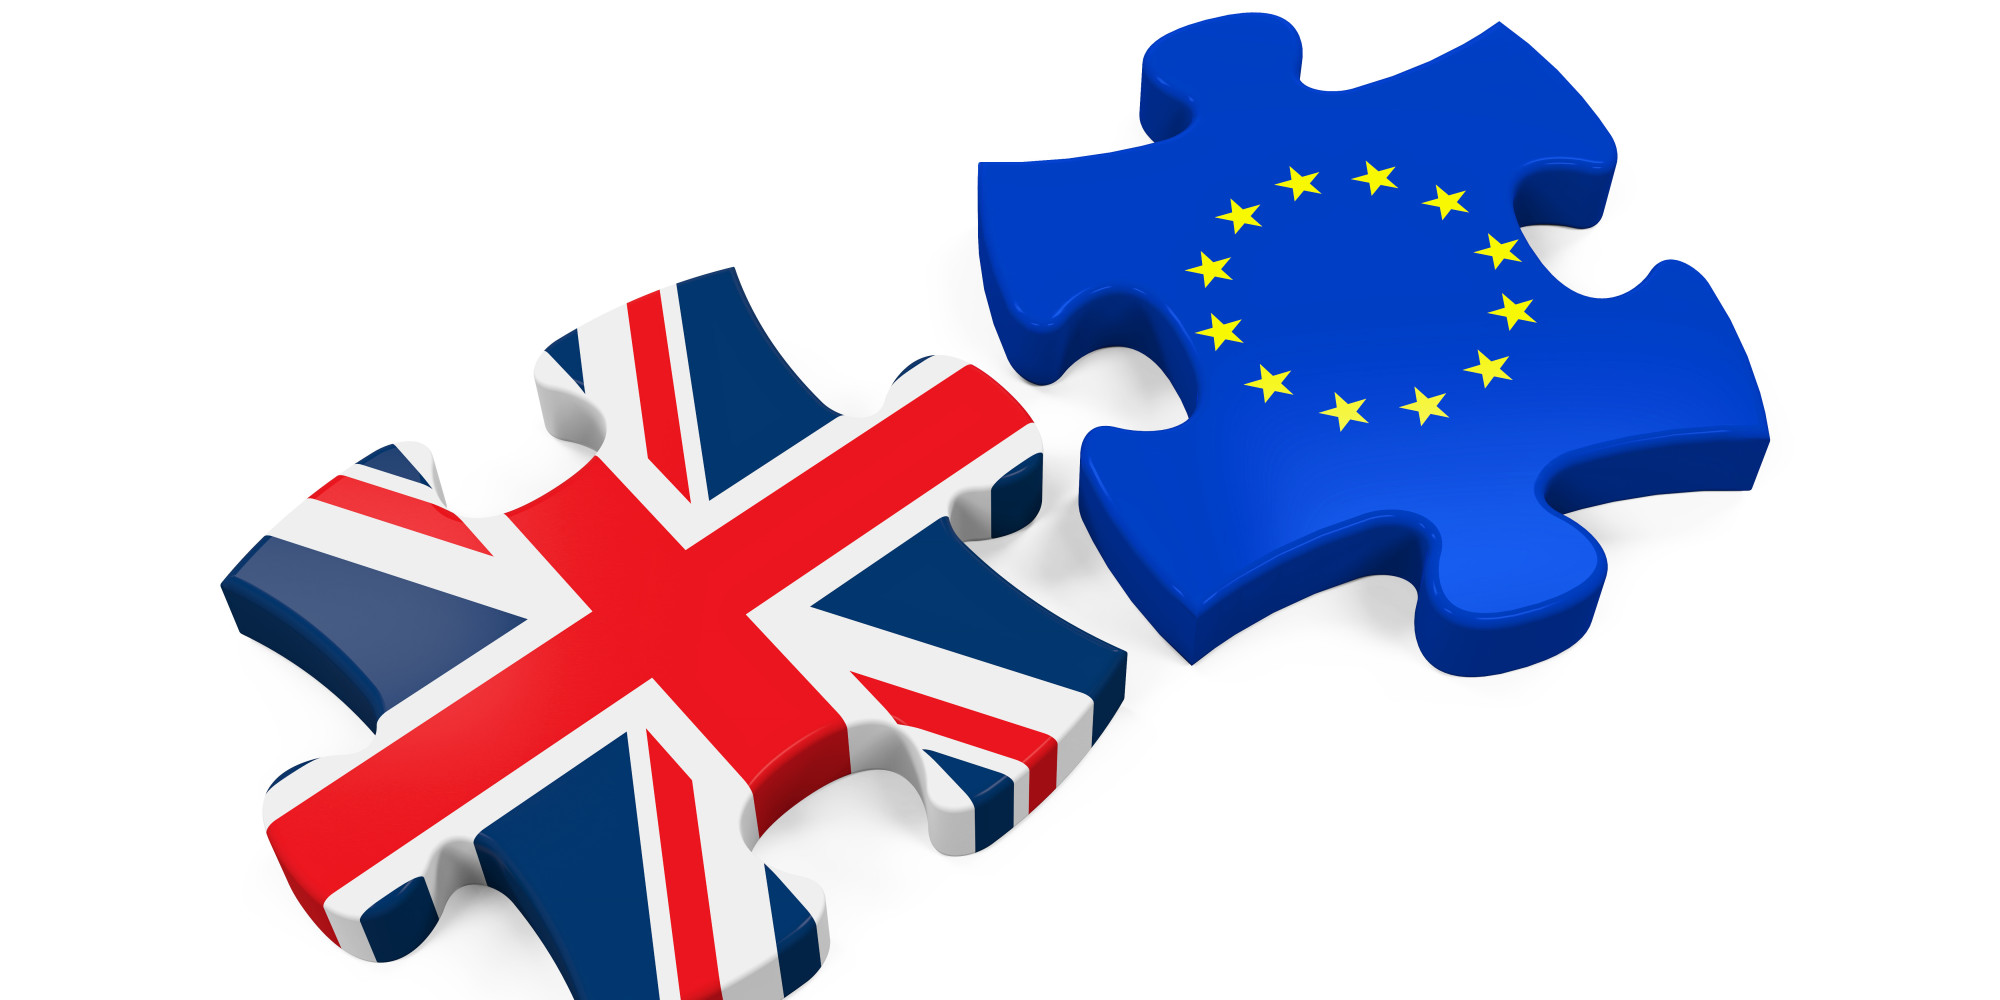 brexit consequences and significance huffpost state clip art images stage clip art image